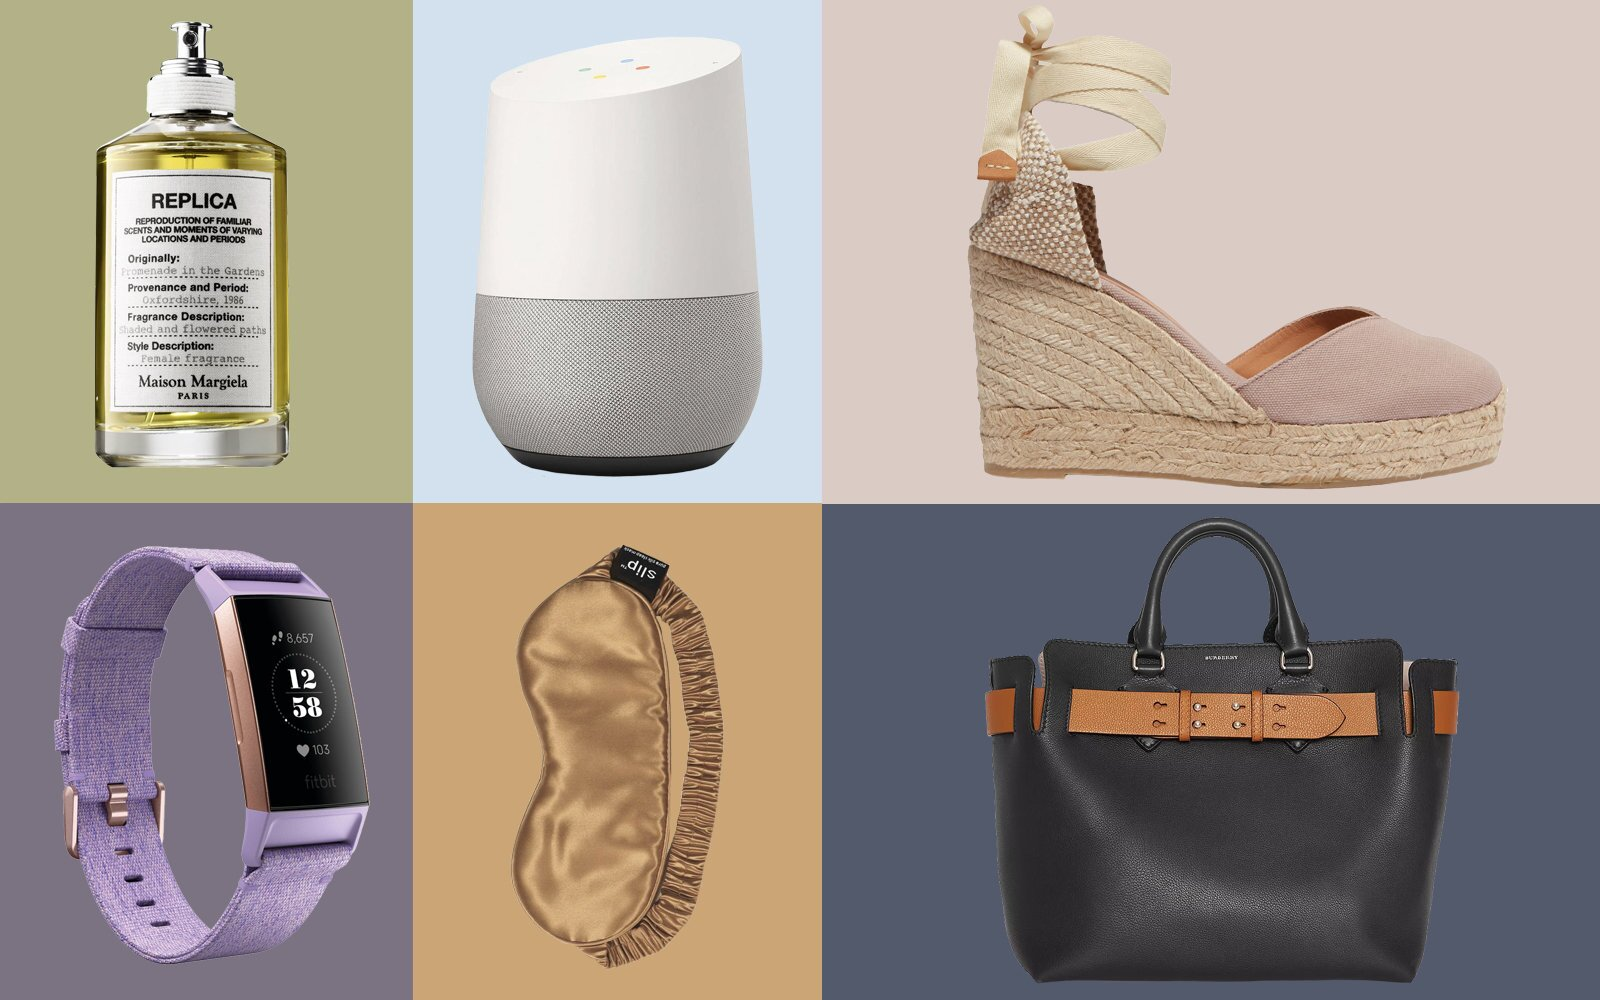 3a14e9735a Moms: Celebrate Yourselves With These Mother's Day Gifts You'll Actually  Want